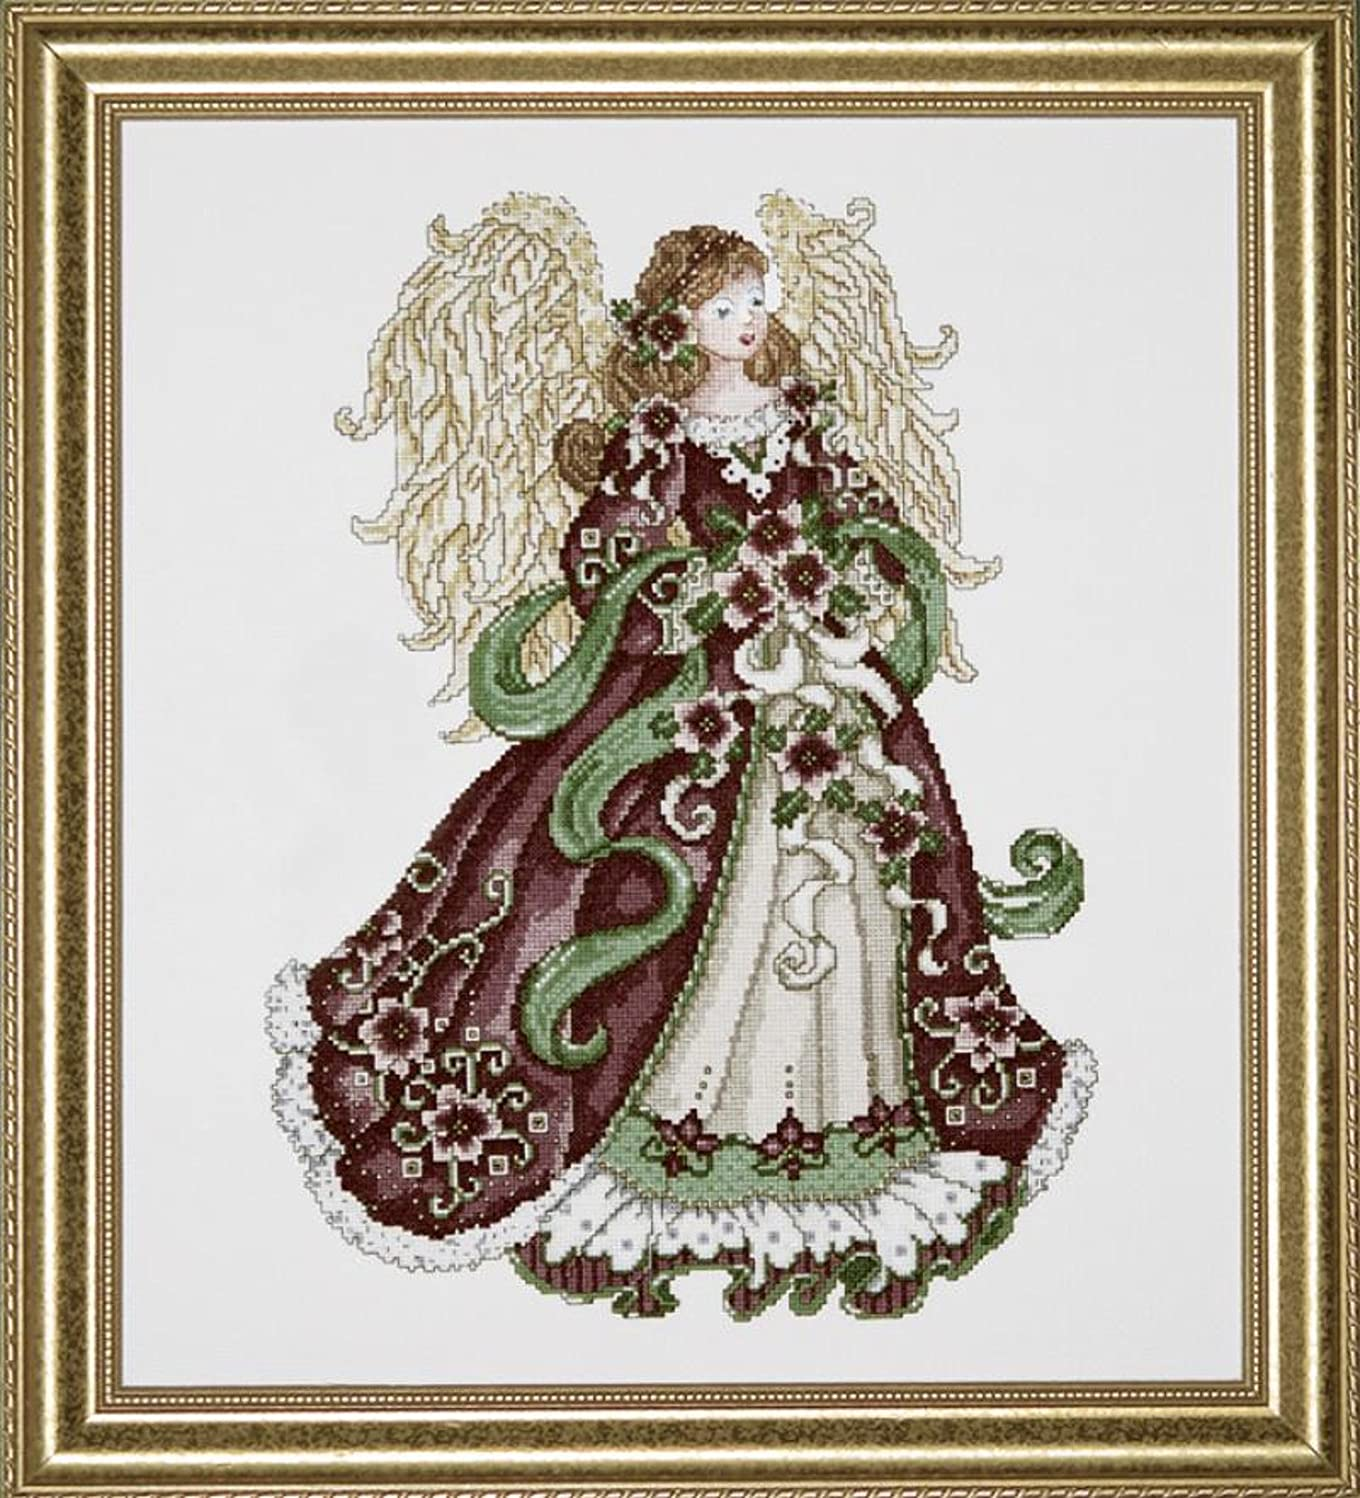 Design Works Angel of Joy, Counted Cross Stitch Picture Kit 5905, 16 by 18 inches, with Gift Card